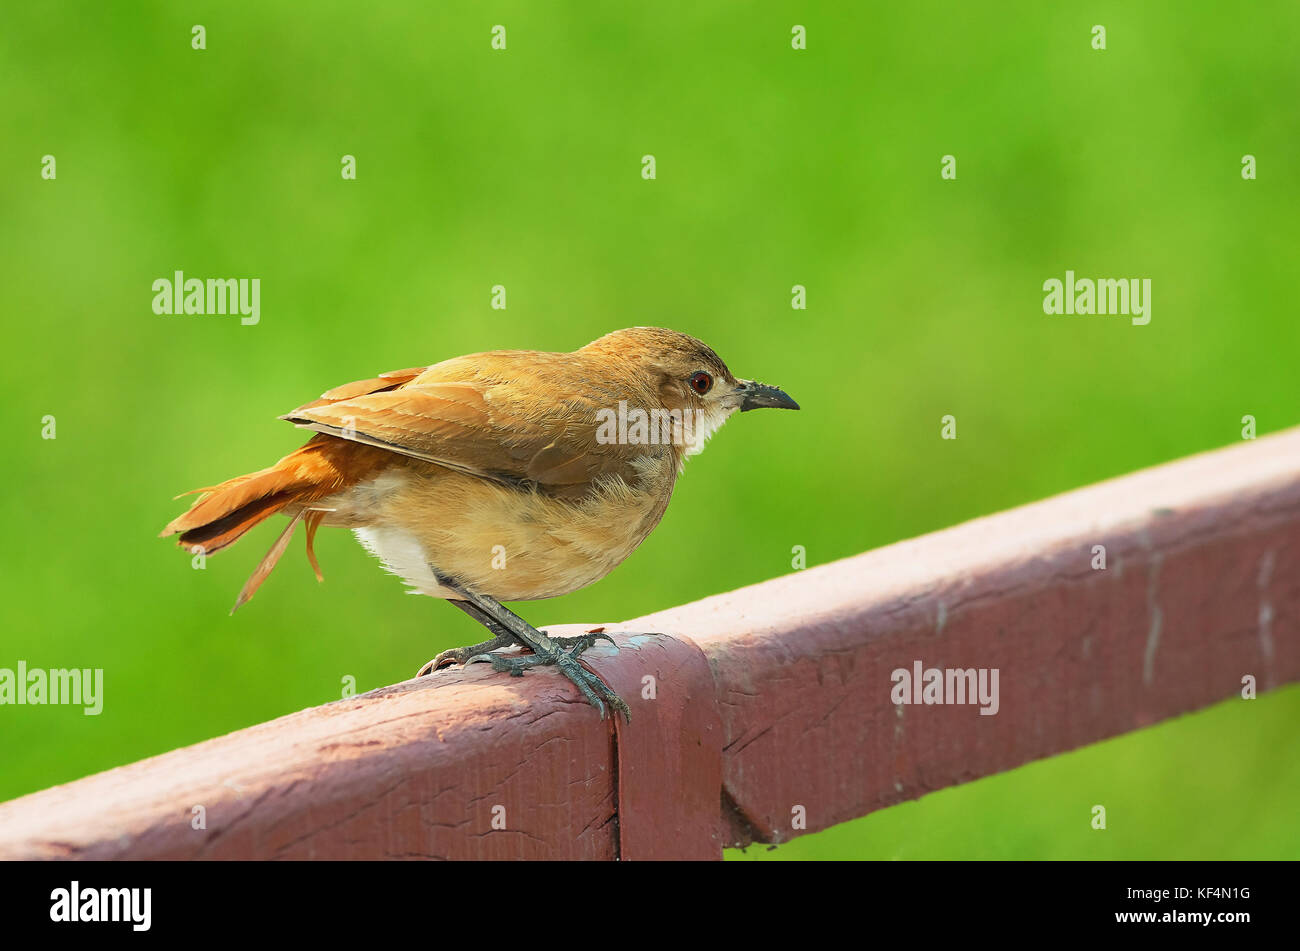 Joao-de-barro bird over a fence with a beautiful green blurred background. Photo of the Bird taken in Pantanal region, - Stock Image